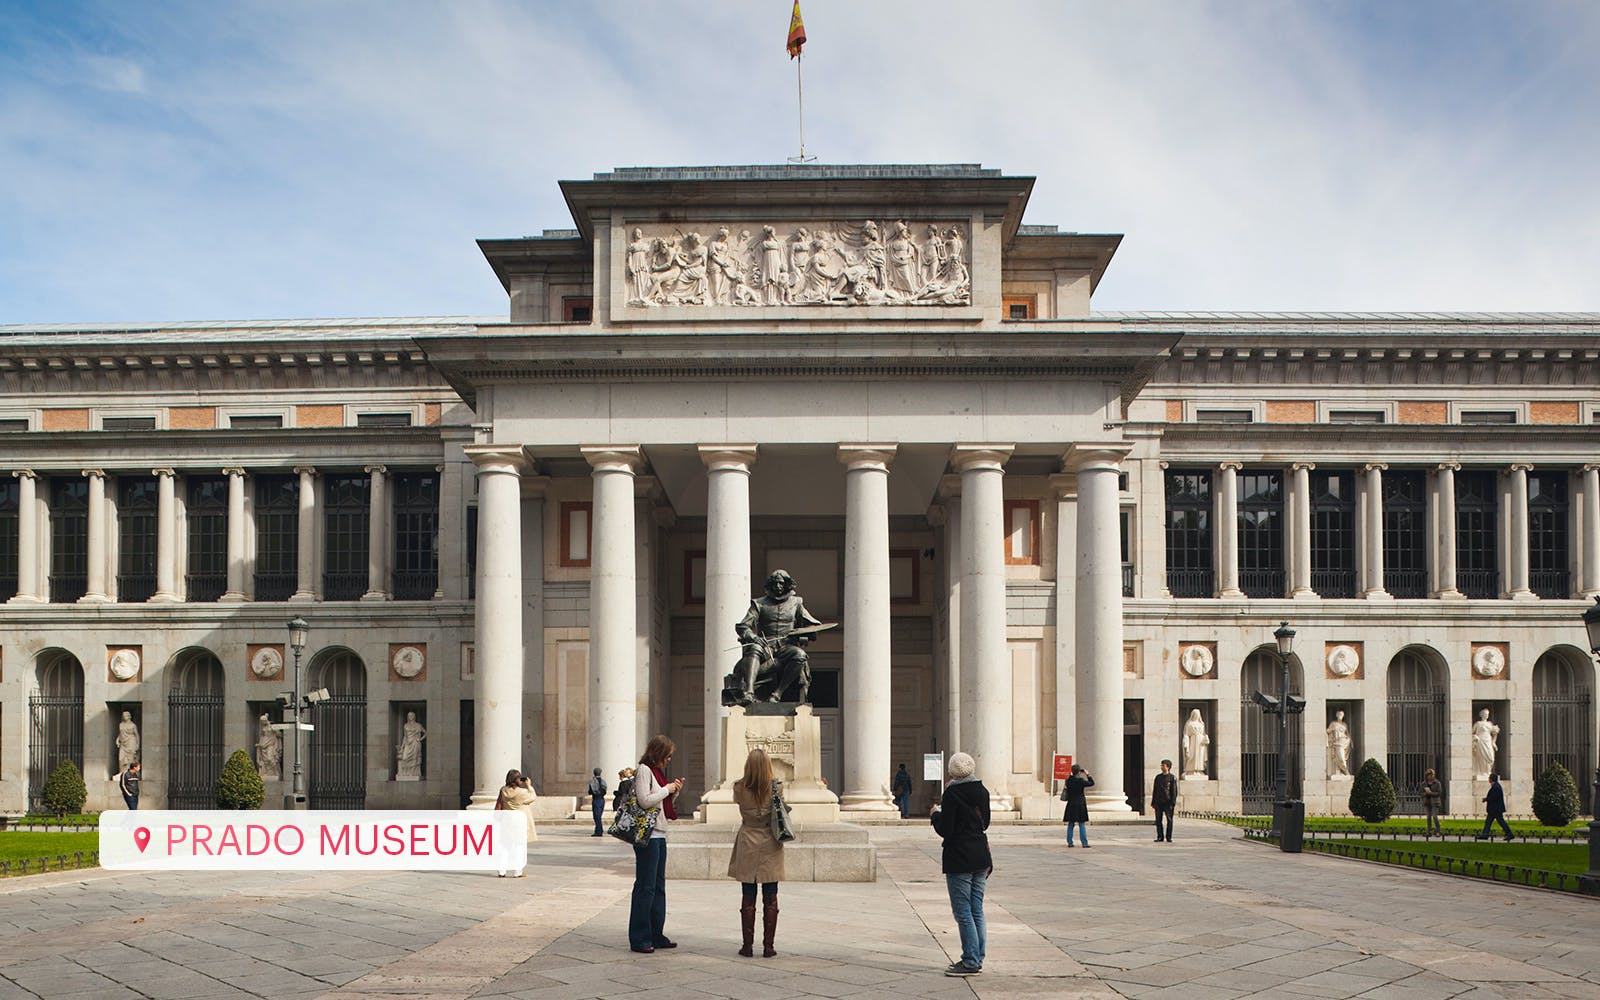 iventure madrid flexi pass: 3 & 5 attraction pass-3